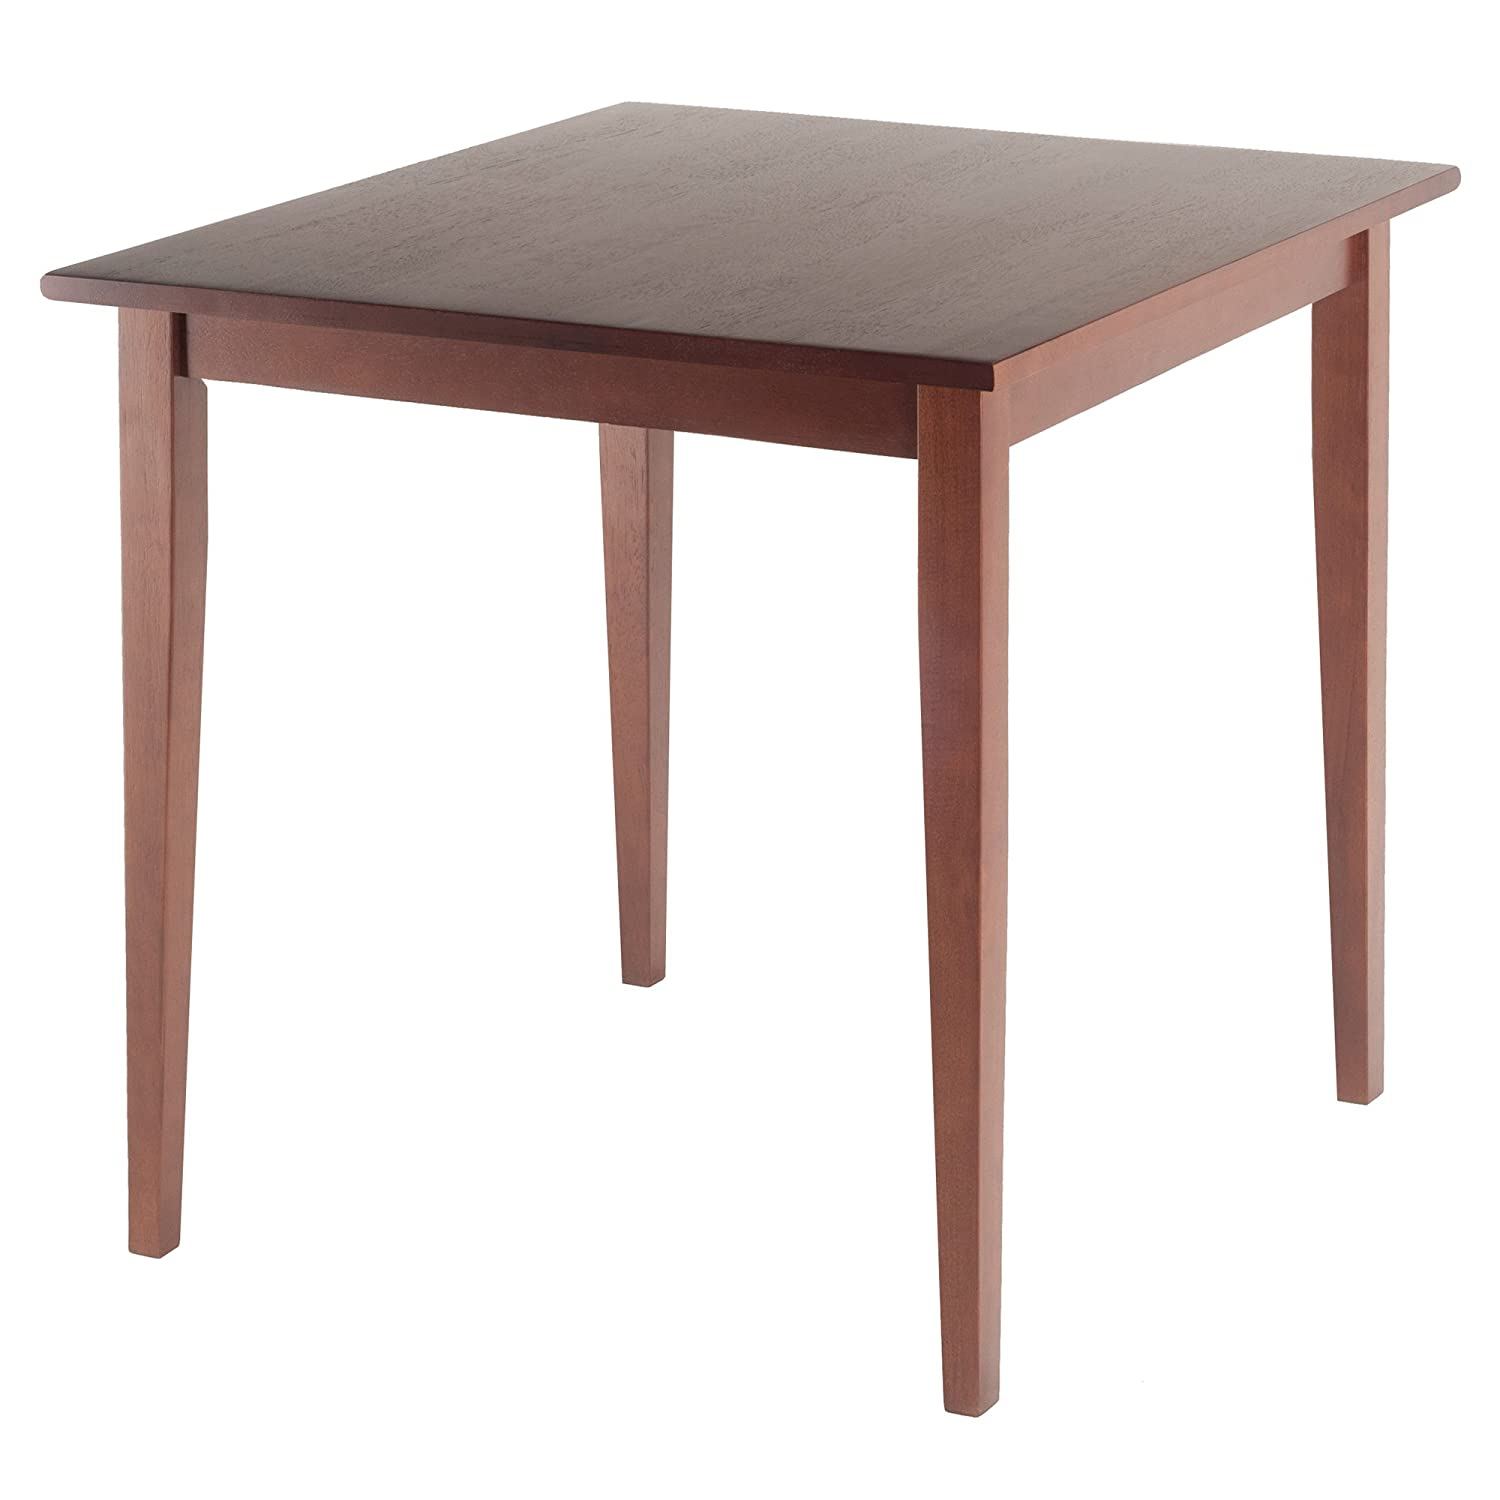 Winsome Wood 94035 Groveland Dining, Walnut